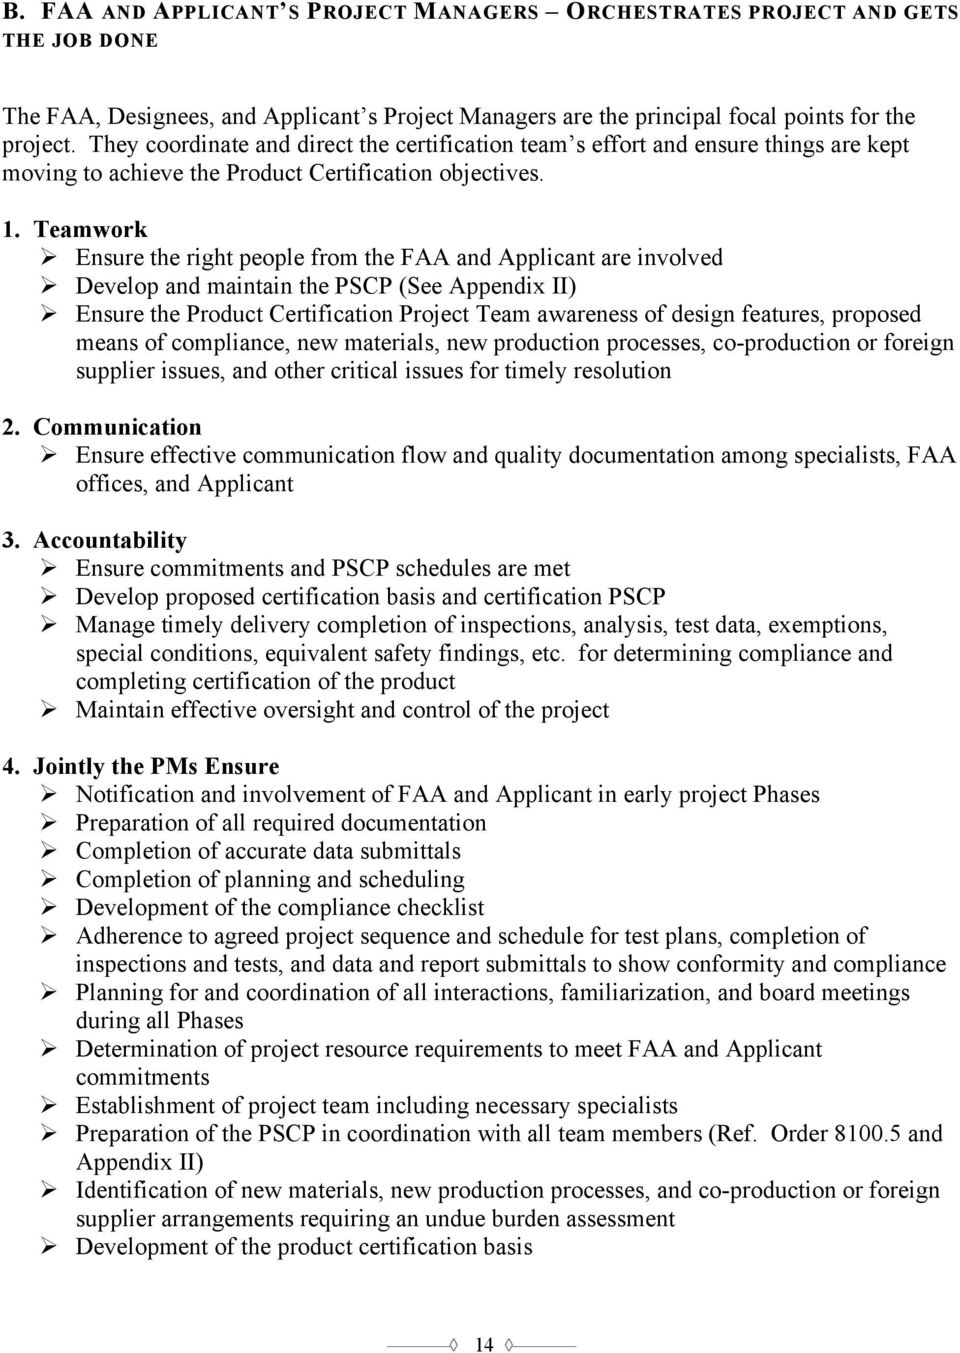 Teamwork Ensure the right people from the FAA and Applicant are involved Develop and maintain the PSCP (See Appendix II) Ensure the Product Certification Project Team awareness of design features,